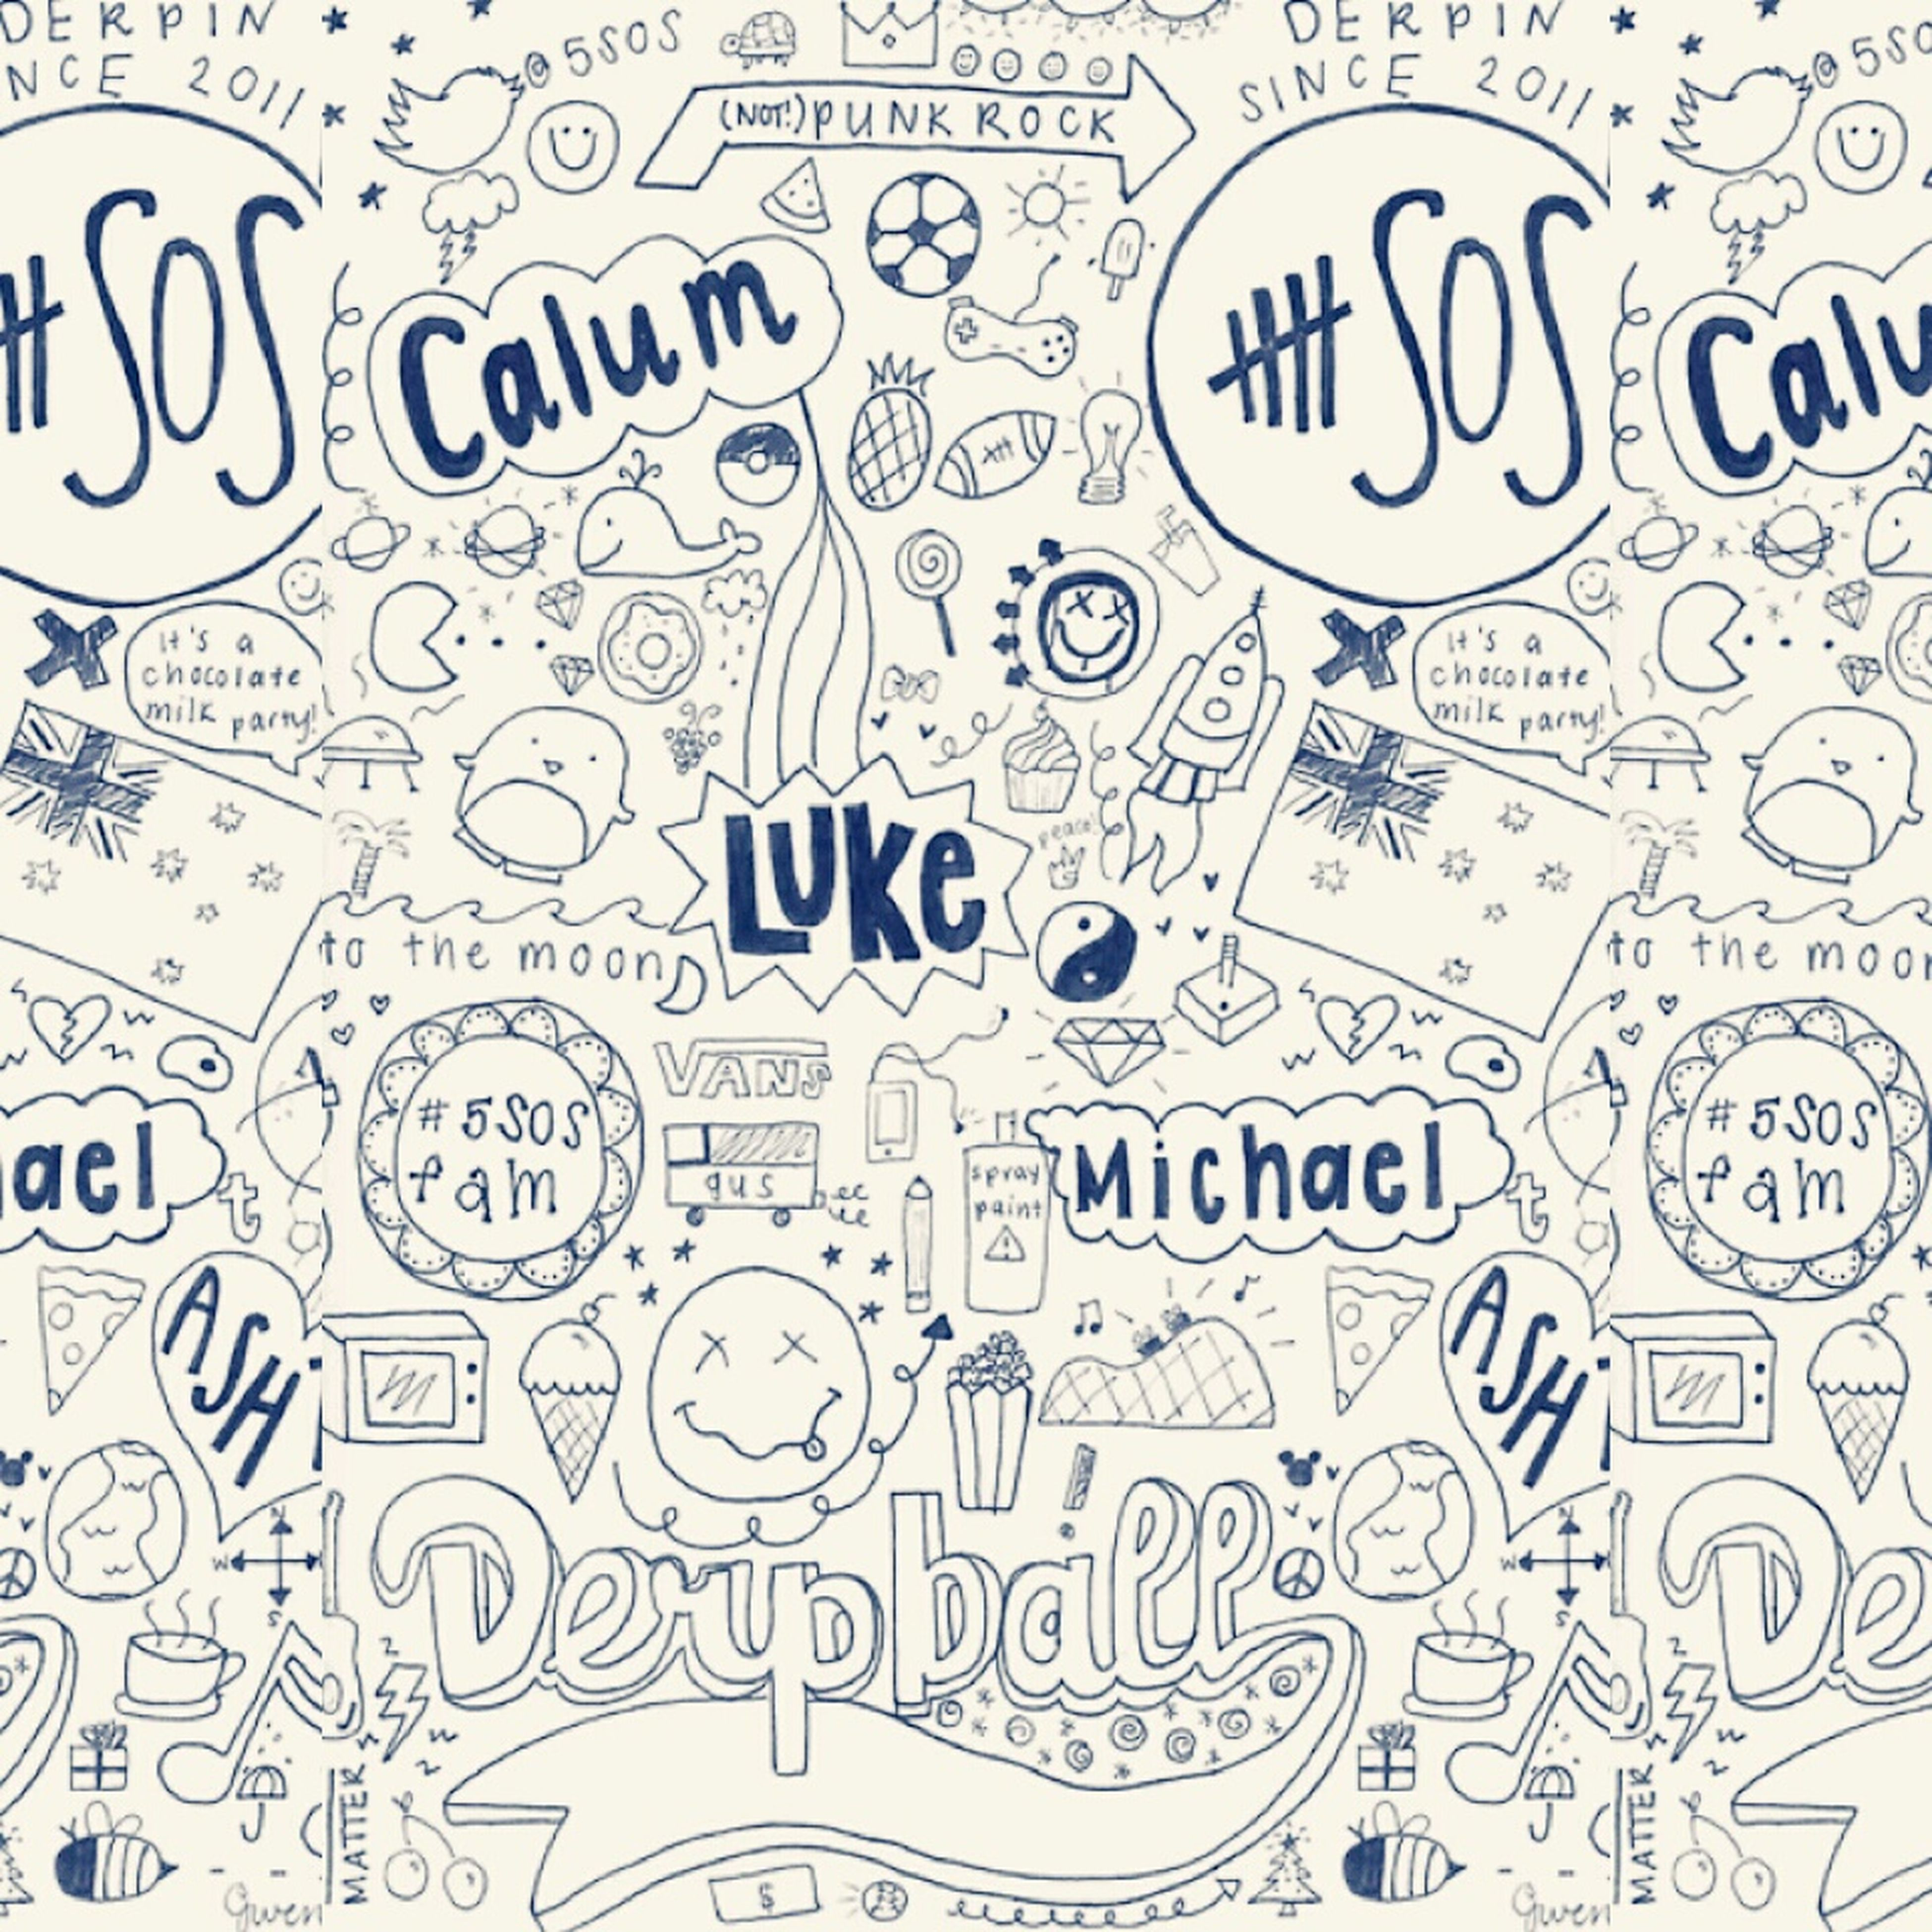 My favorite band/celebirty comment yours ♡♥♥♡♥♥♡ 5SOS Celebirties